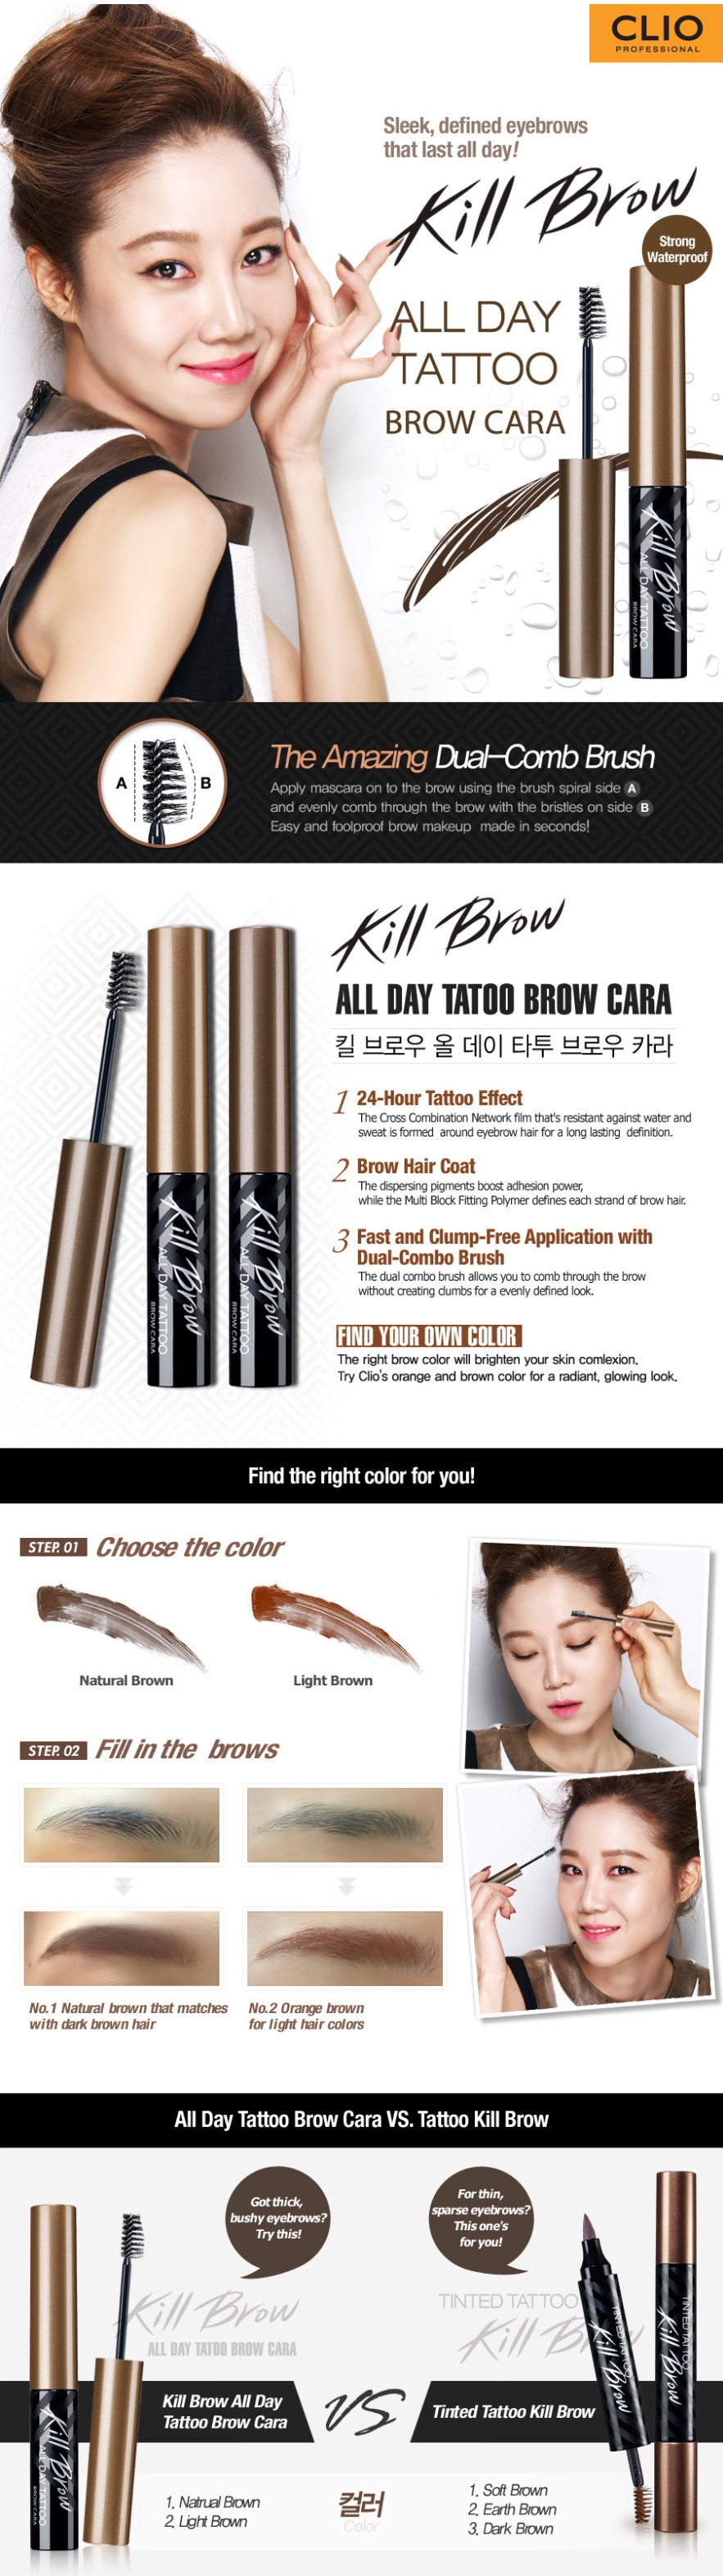 CLIO Kill Brow All-day Tattoo Brow Cara